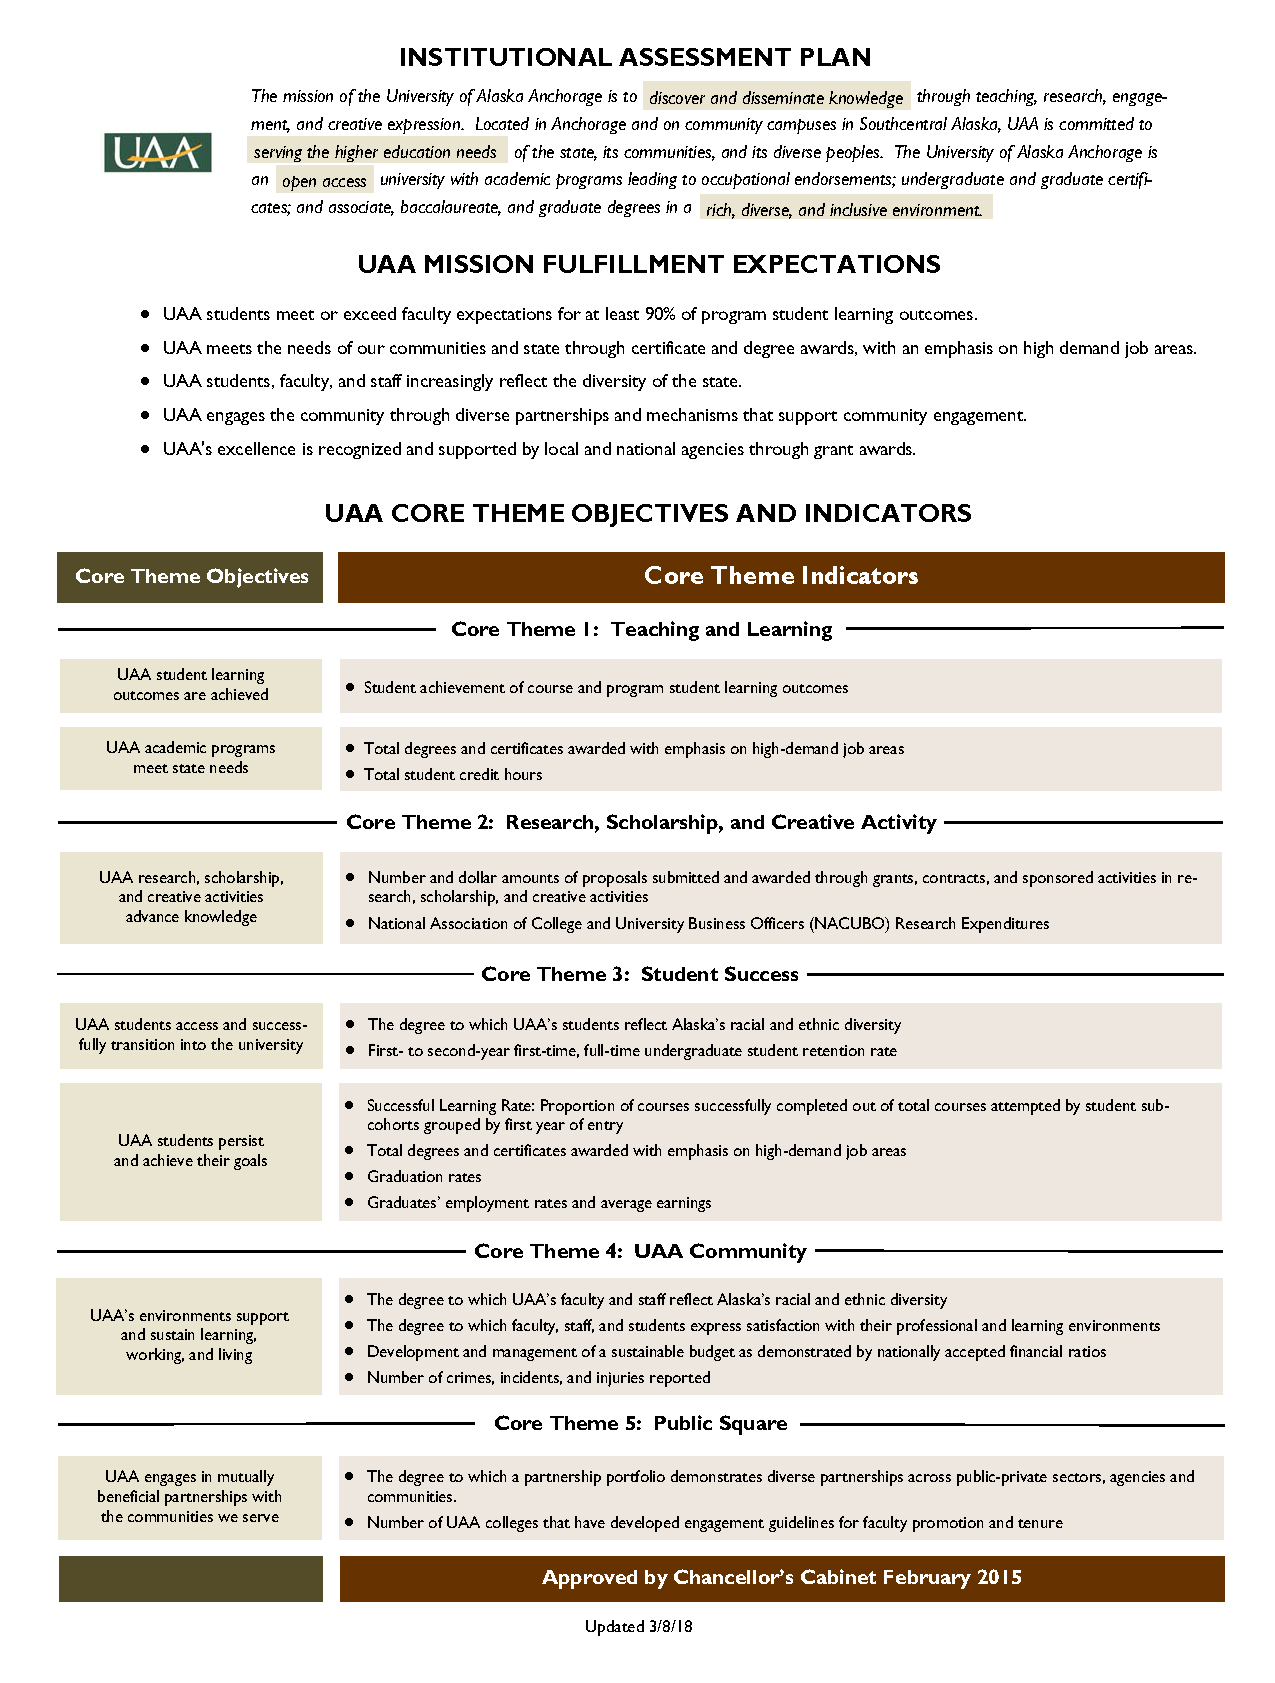 institutional assessment plan